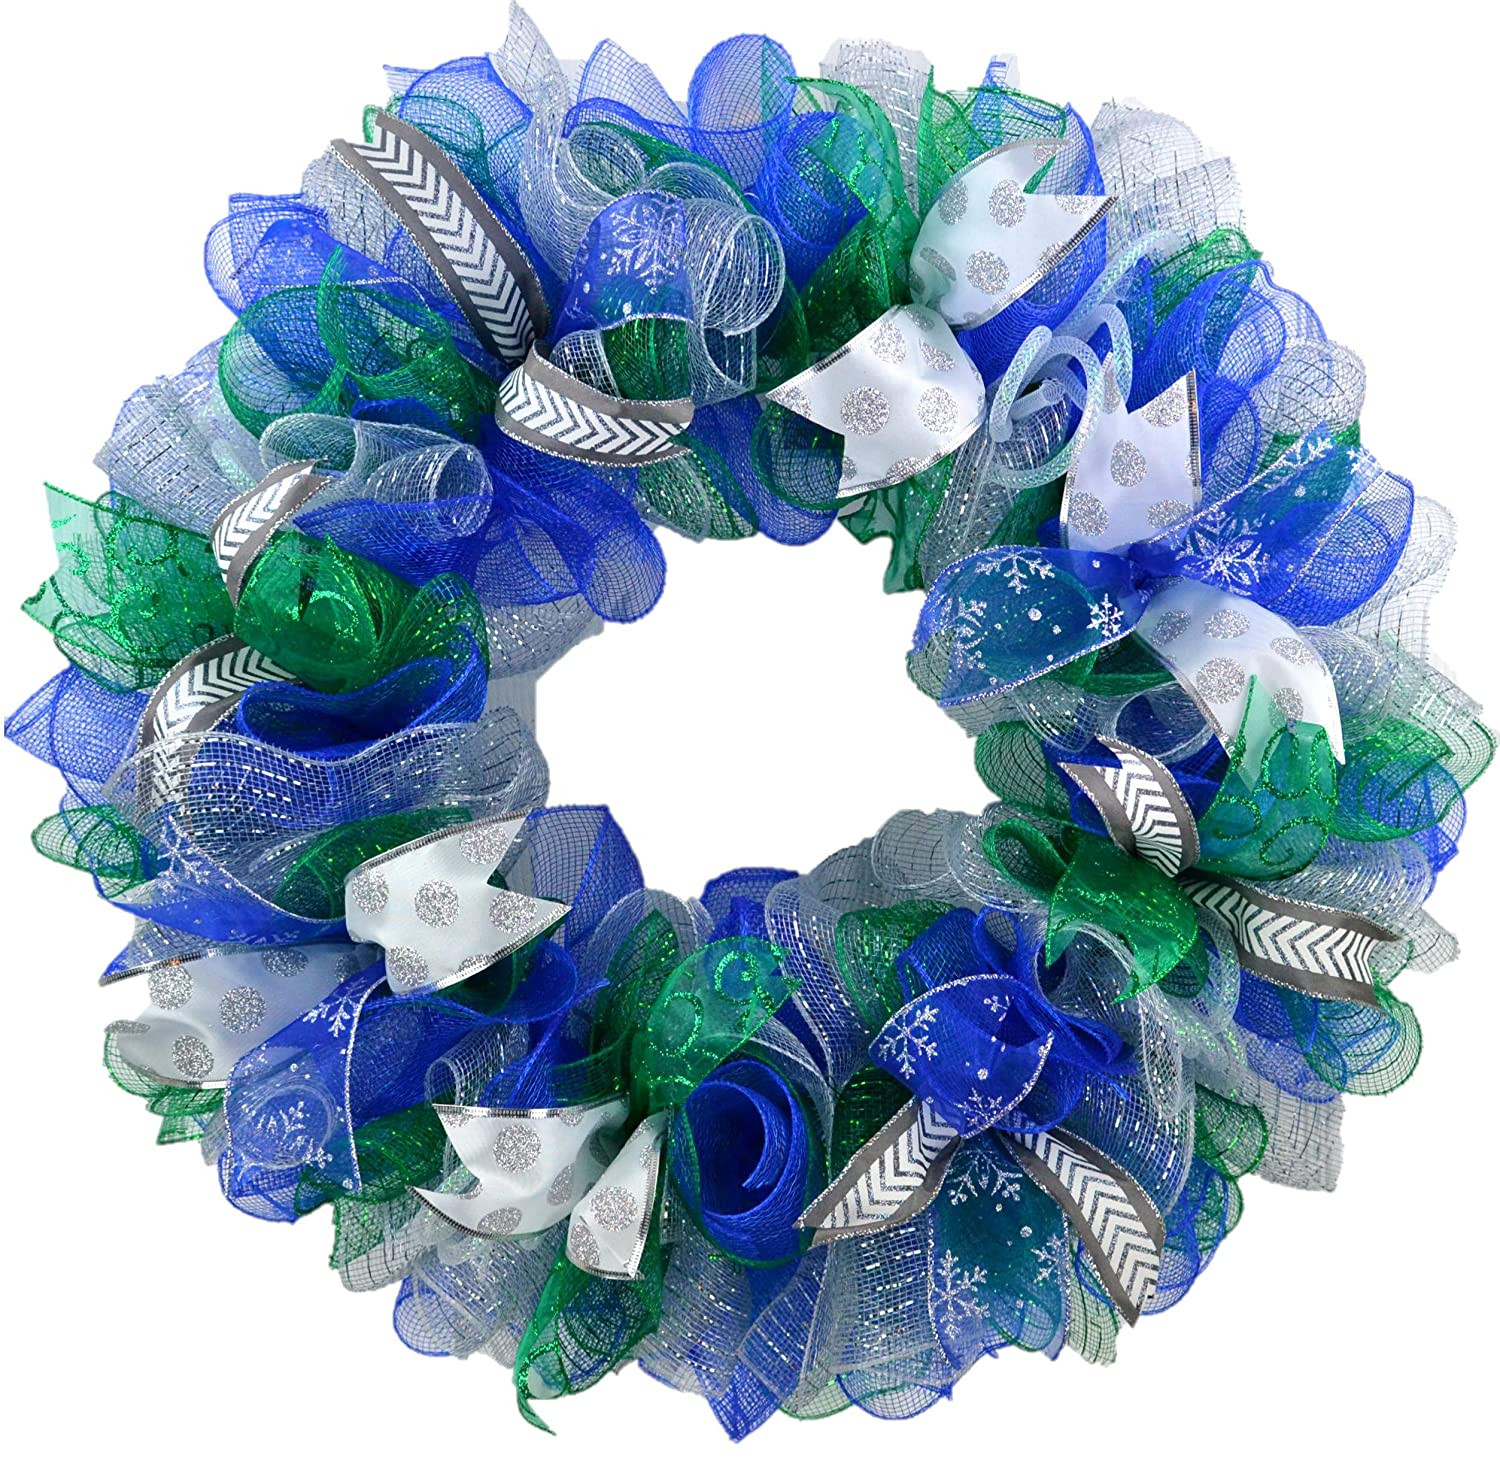 Winter Wreath | Hanukkah Decorations | Front Door Decor for After Christmas Blue Green White Silver